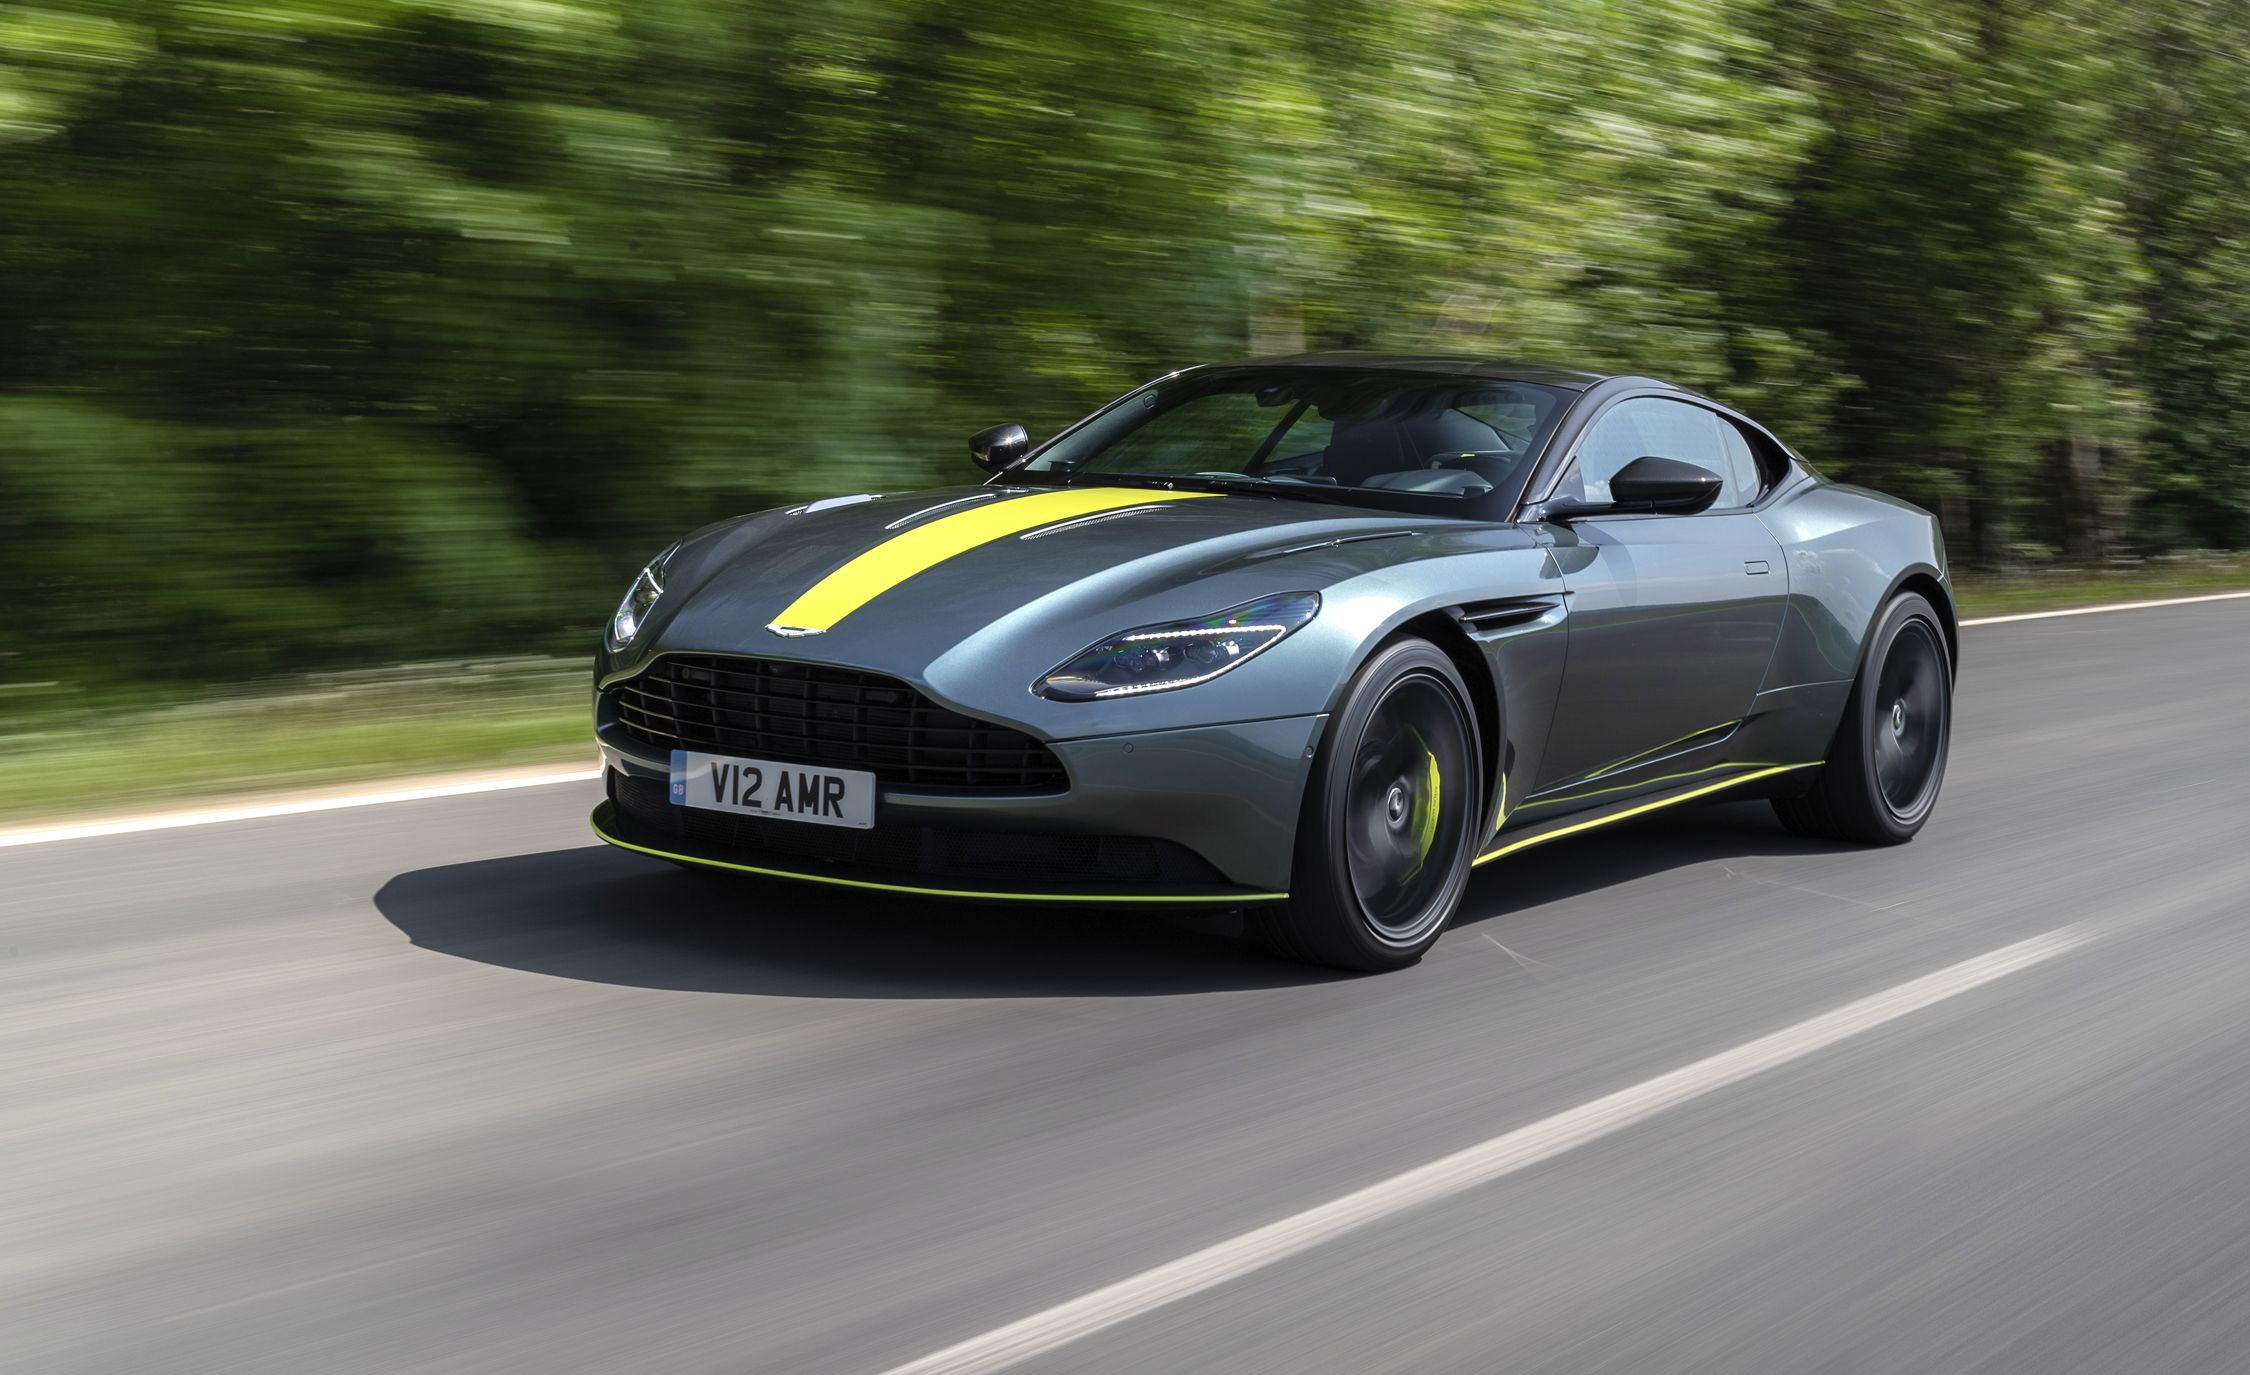 2019 aston martin db11 amr blends style and speed | review | car and